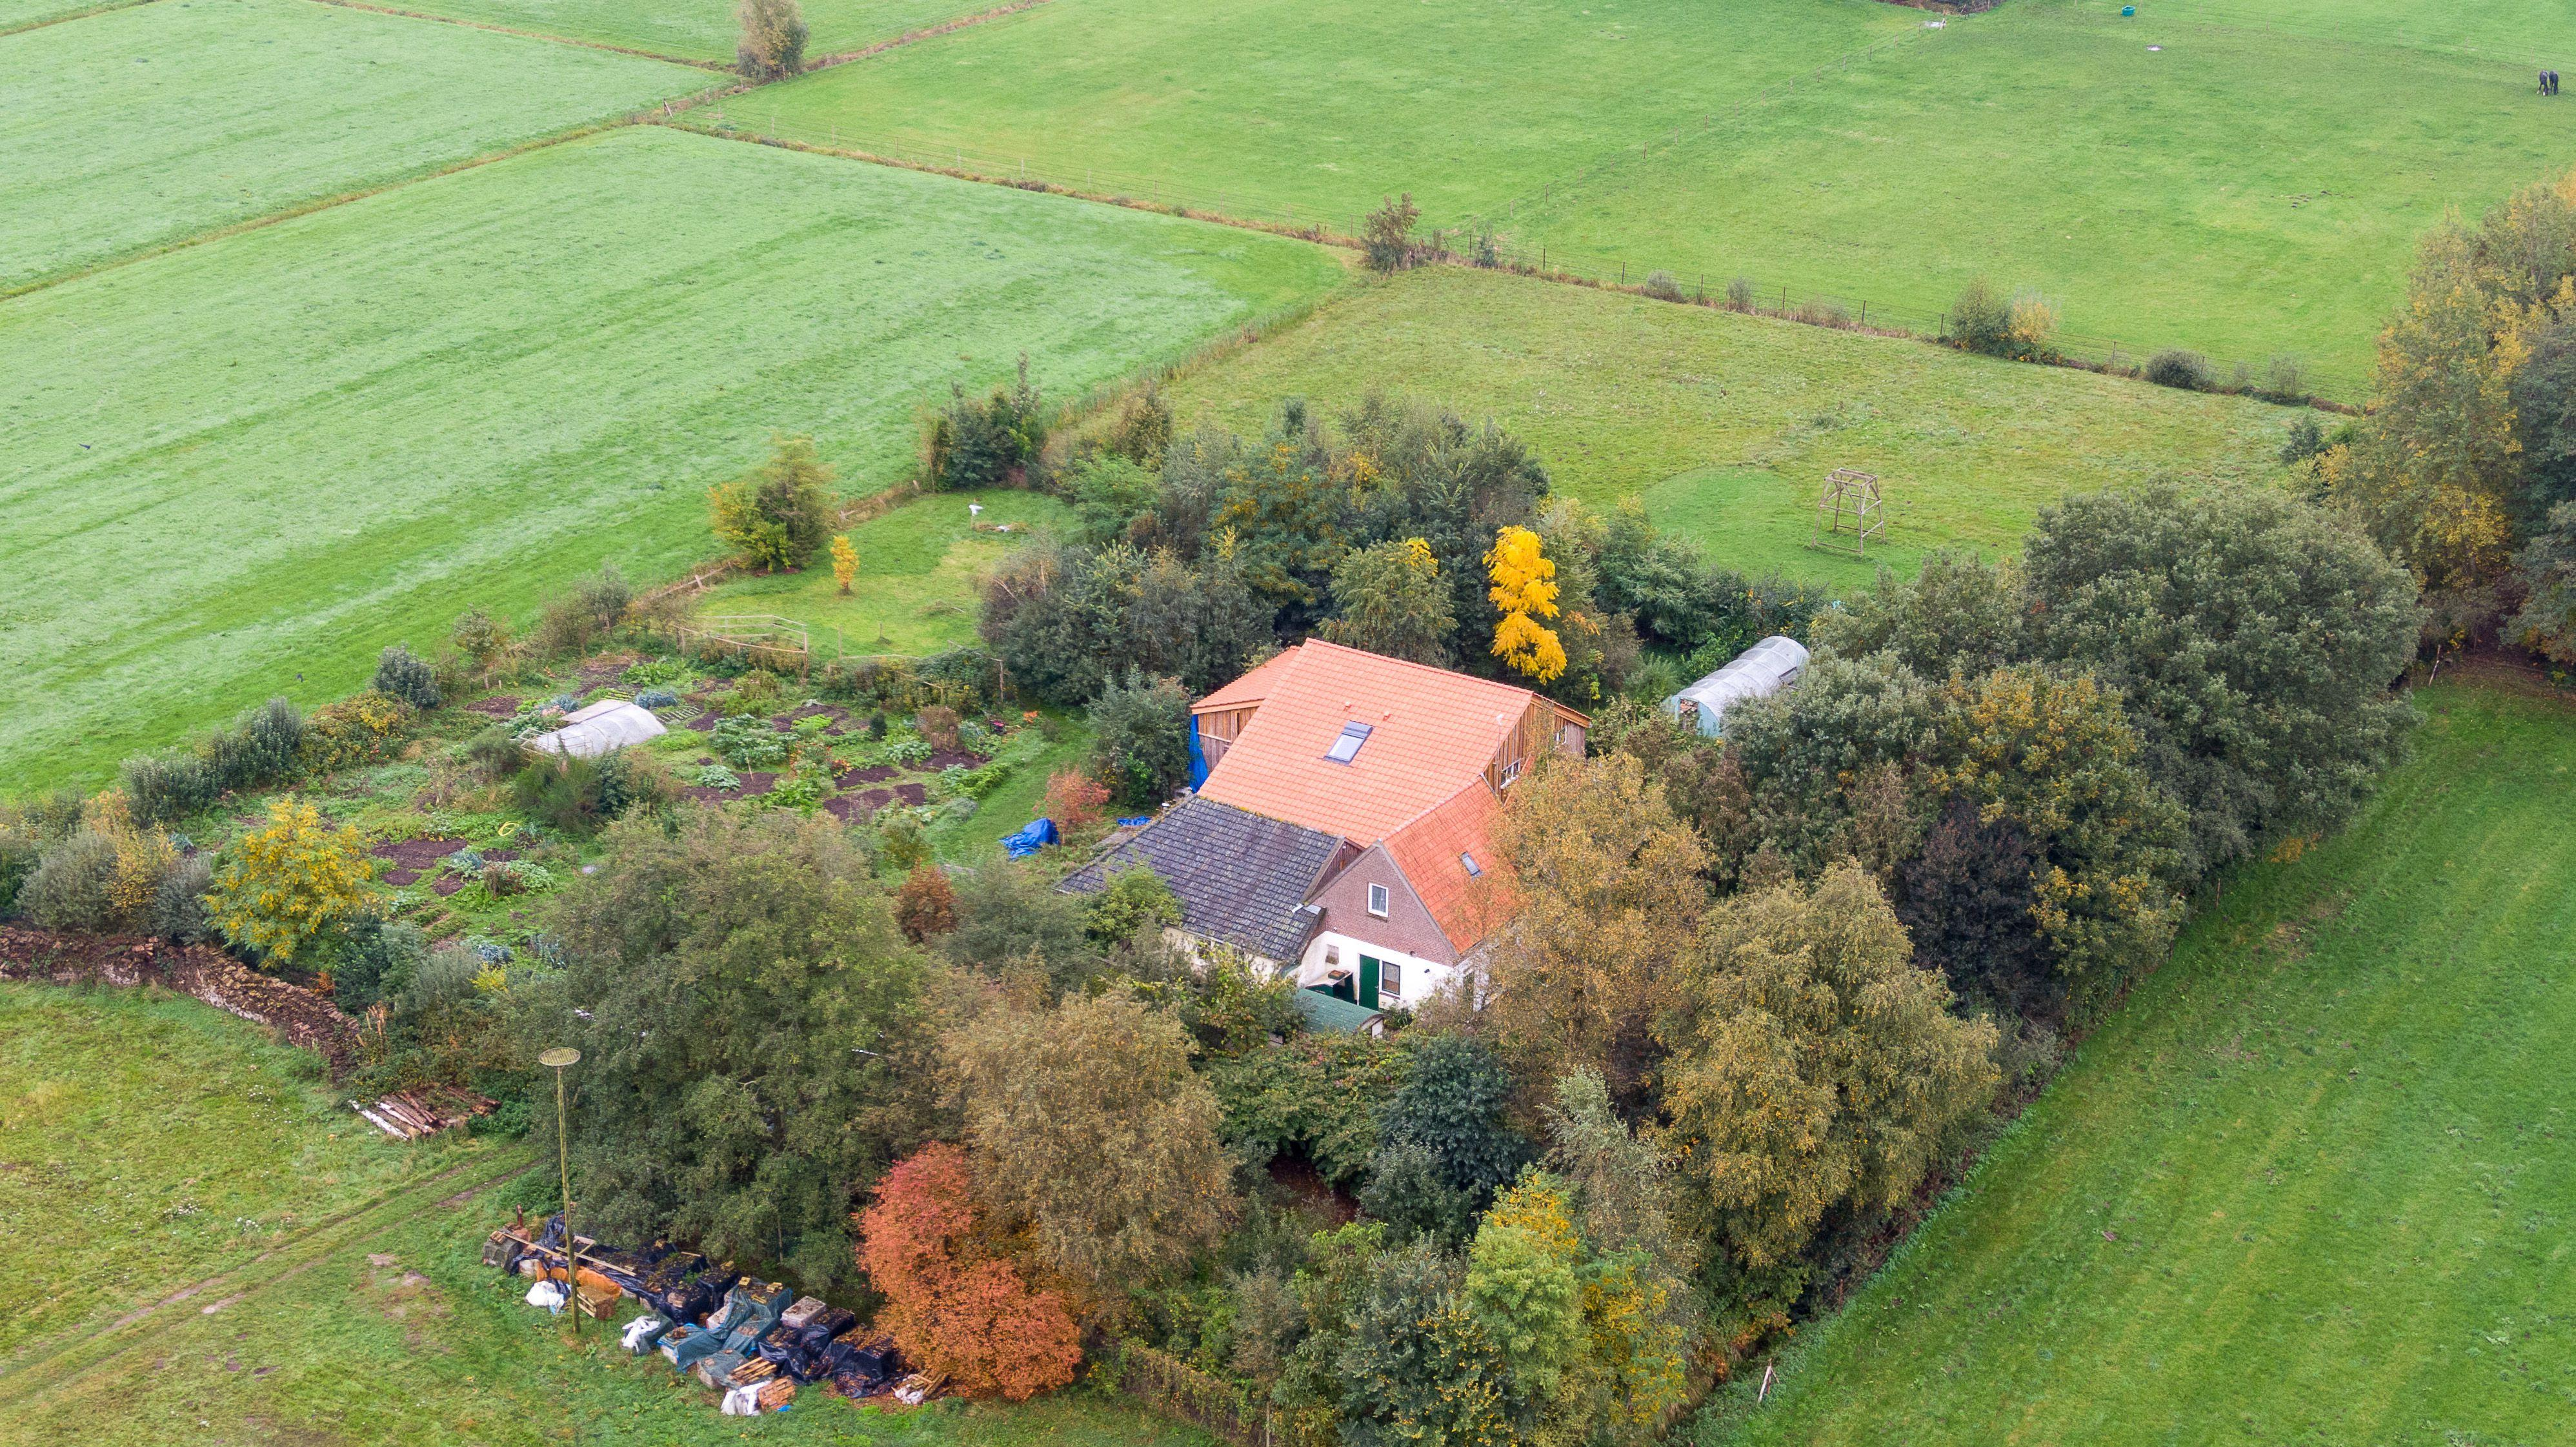 """This aerial picture taken on October 15, 2019 shows a farmhouse in a remote area of northern Netherlands' province of Drenthe, near the village of Ruinerwold, where Dutch police discovered a hidden staircase behind a cupboard leading to a cellar where a man and five others believed to be his children aged between 18 and 25 were hidden and reportedly spent years """"waiting for the end of time"""", officials said. - Local media said the family were found after one of the sons went to a nearby pub in a confused state, drank five beers and then asked for help, saying he had not been outside for nine years. Police arrested a 58-year-old man at the scene for failing to cooperate with the investigation, but he was not the father. Many questions were unanswered and police are investigating """"All scenarios"""". """"At this point we cannot give further information,"""" local police said. (Photo by Wilbert Bijzitter / ANP / AFP) / Netherlands OUT (Photo by WILBERT BIJZITTER/ANP/AFP via Getty Images)"""